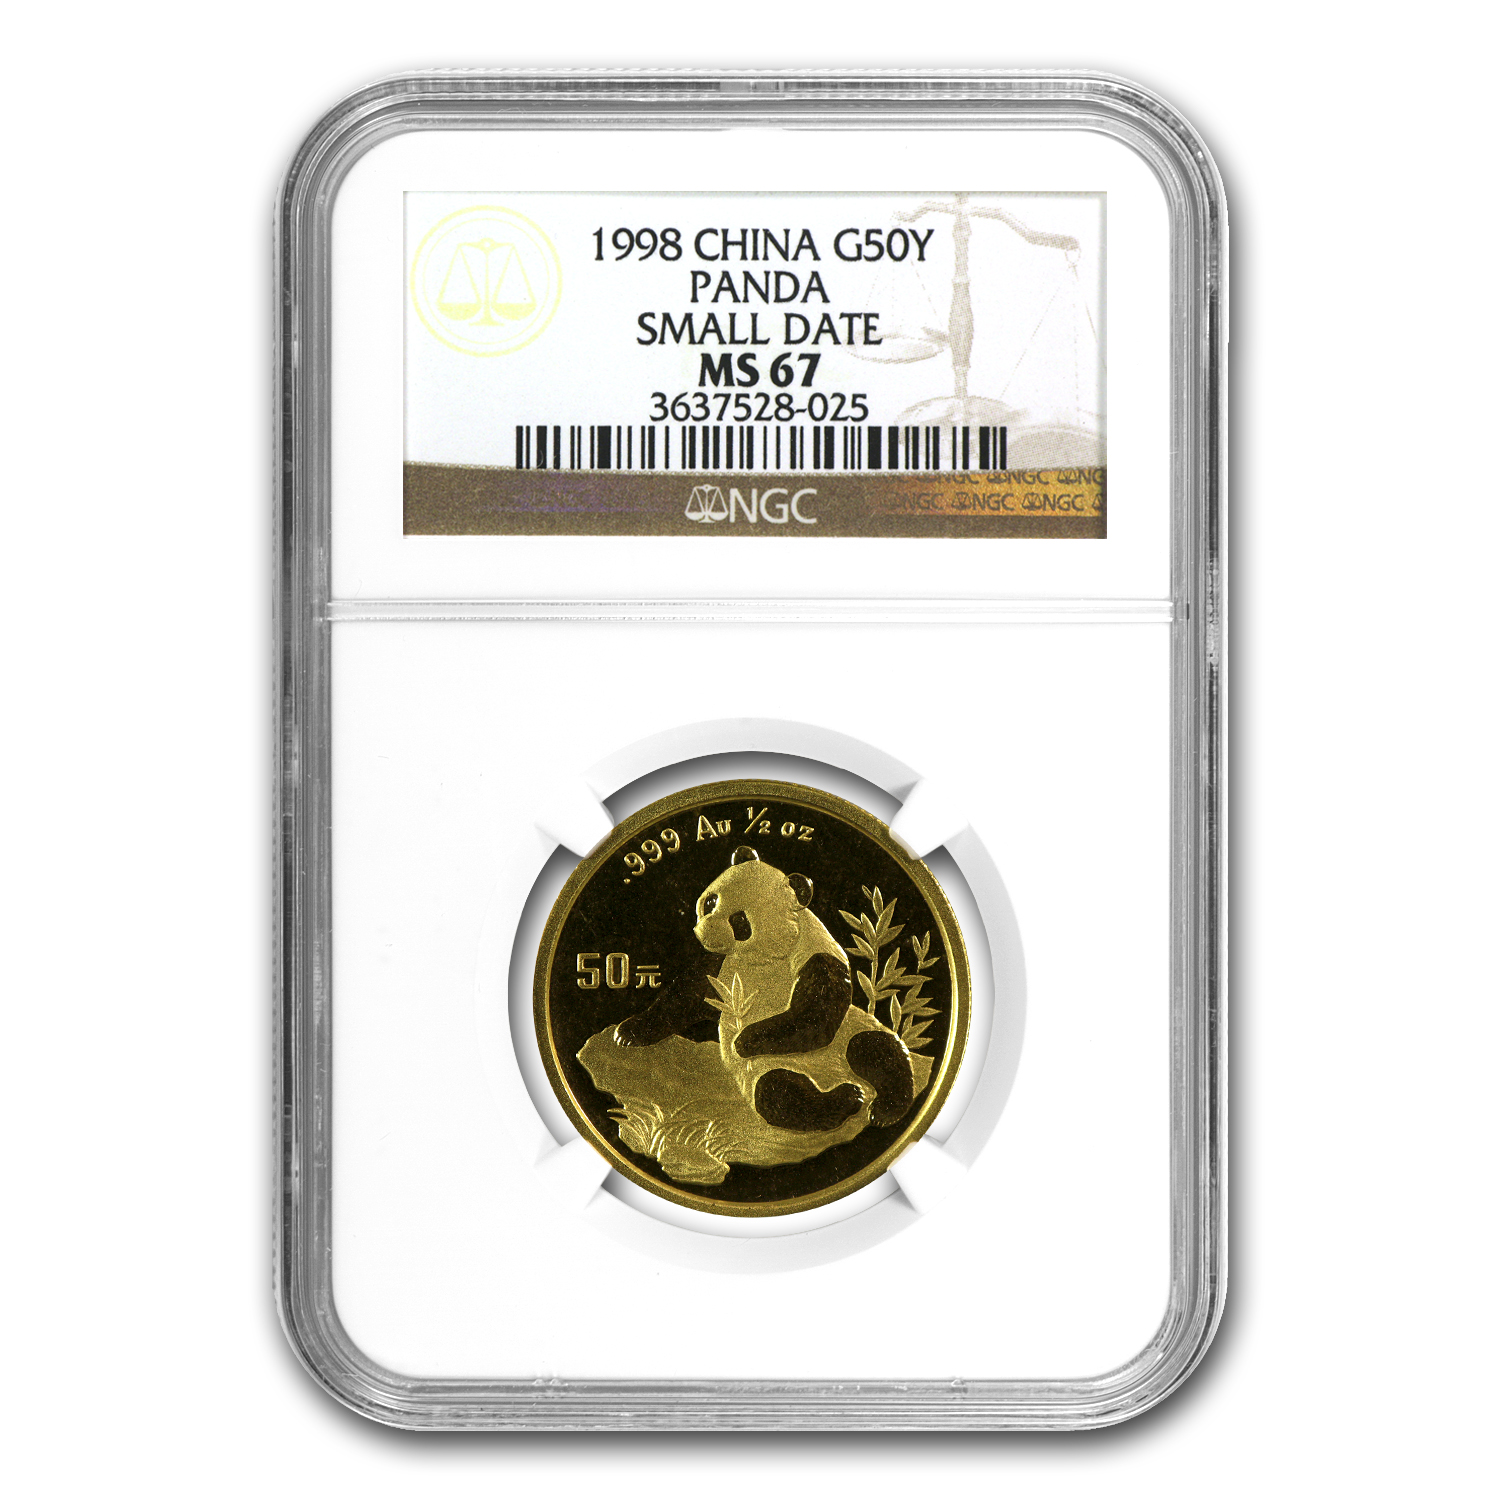 1998 China 1/2 oz Gold Panda Small Date MS-67 NGC